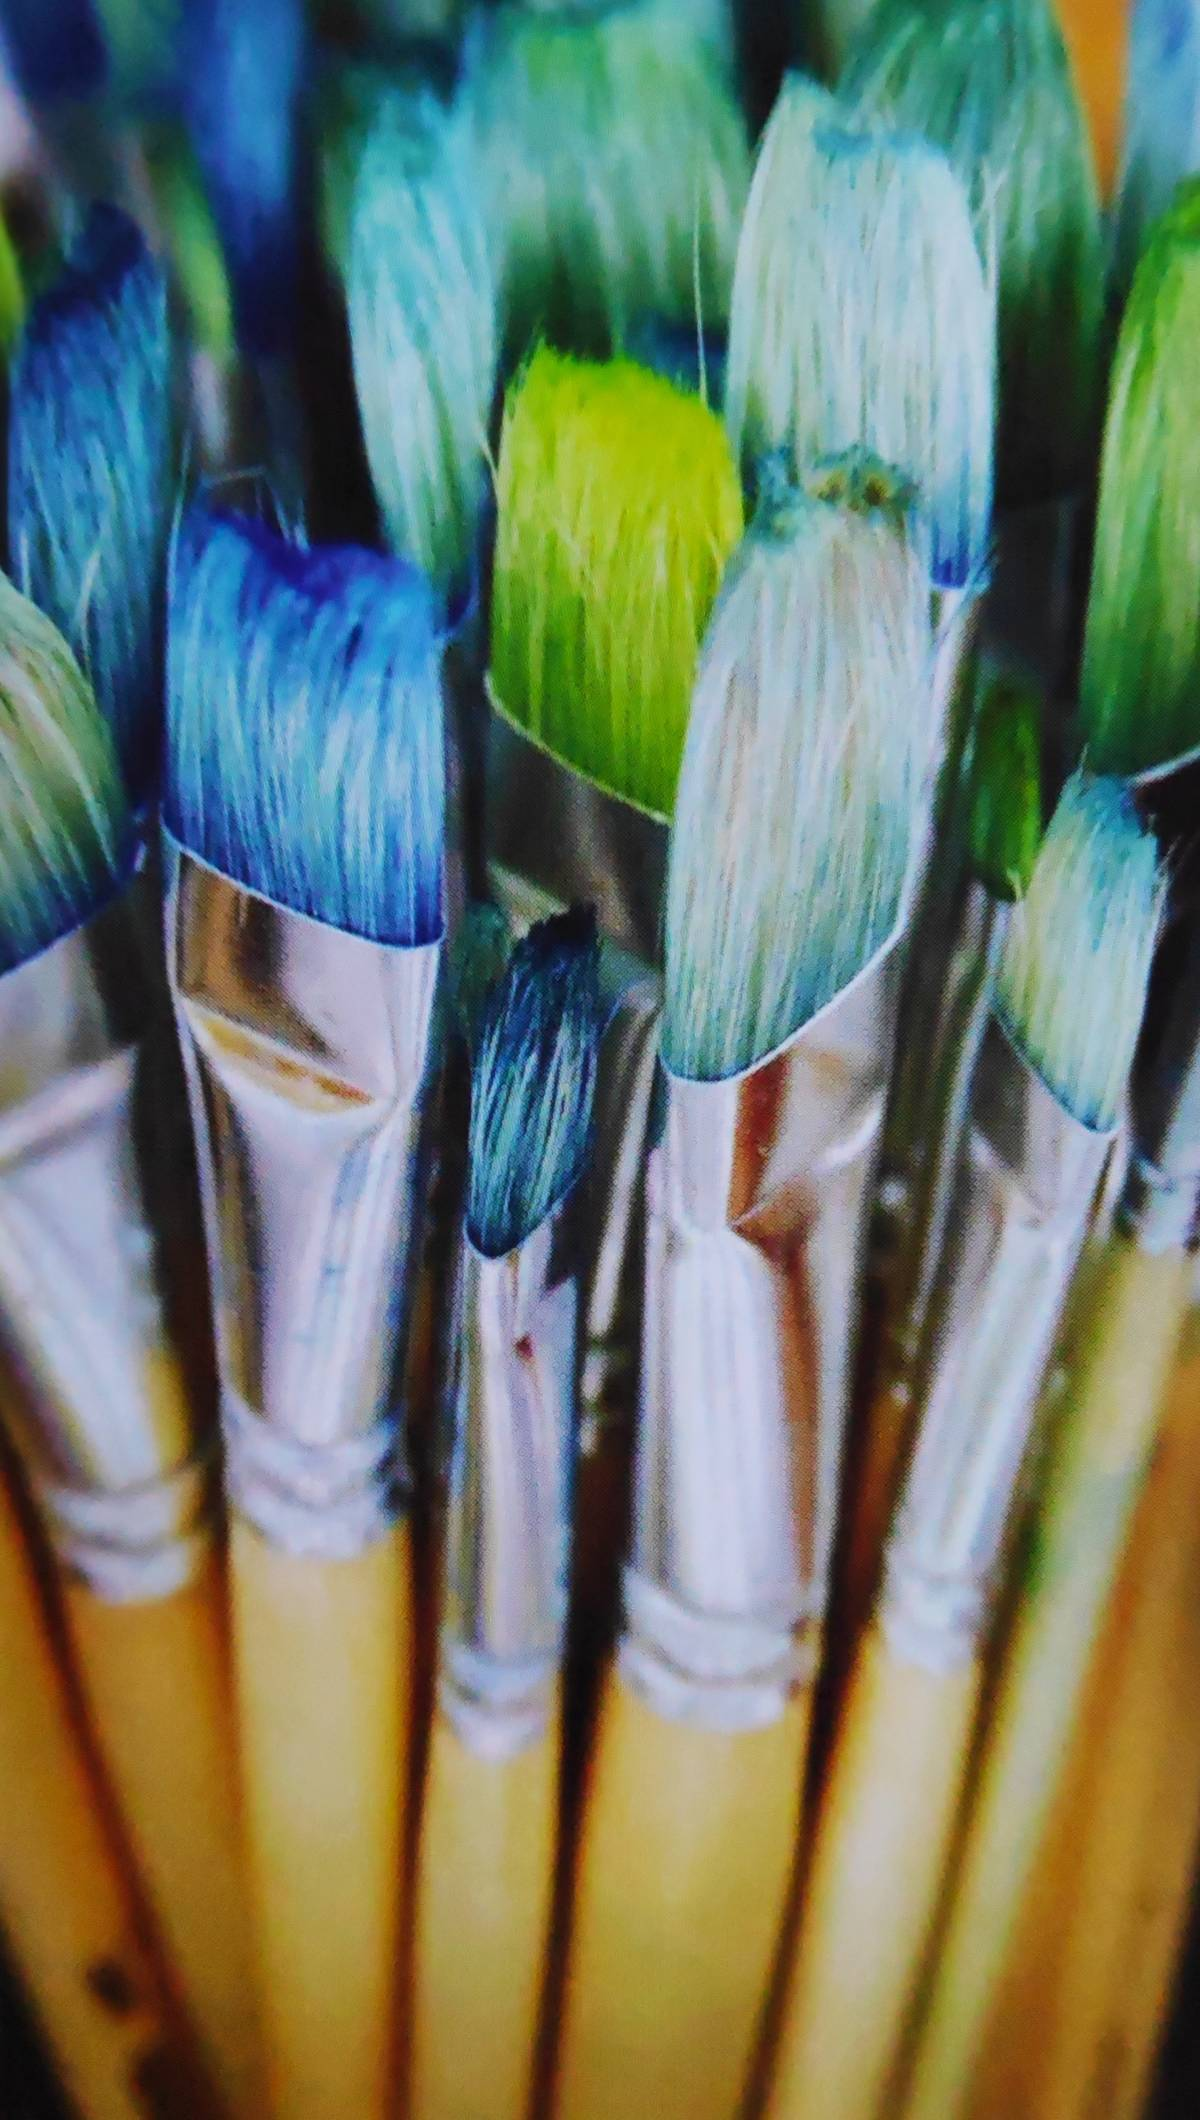 brushes for acrylic family portrait, Pinsel für die Acryl Familienportraitsn